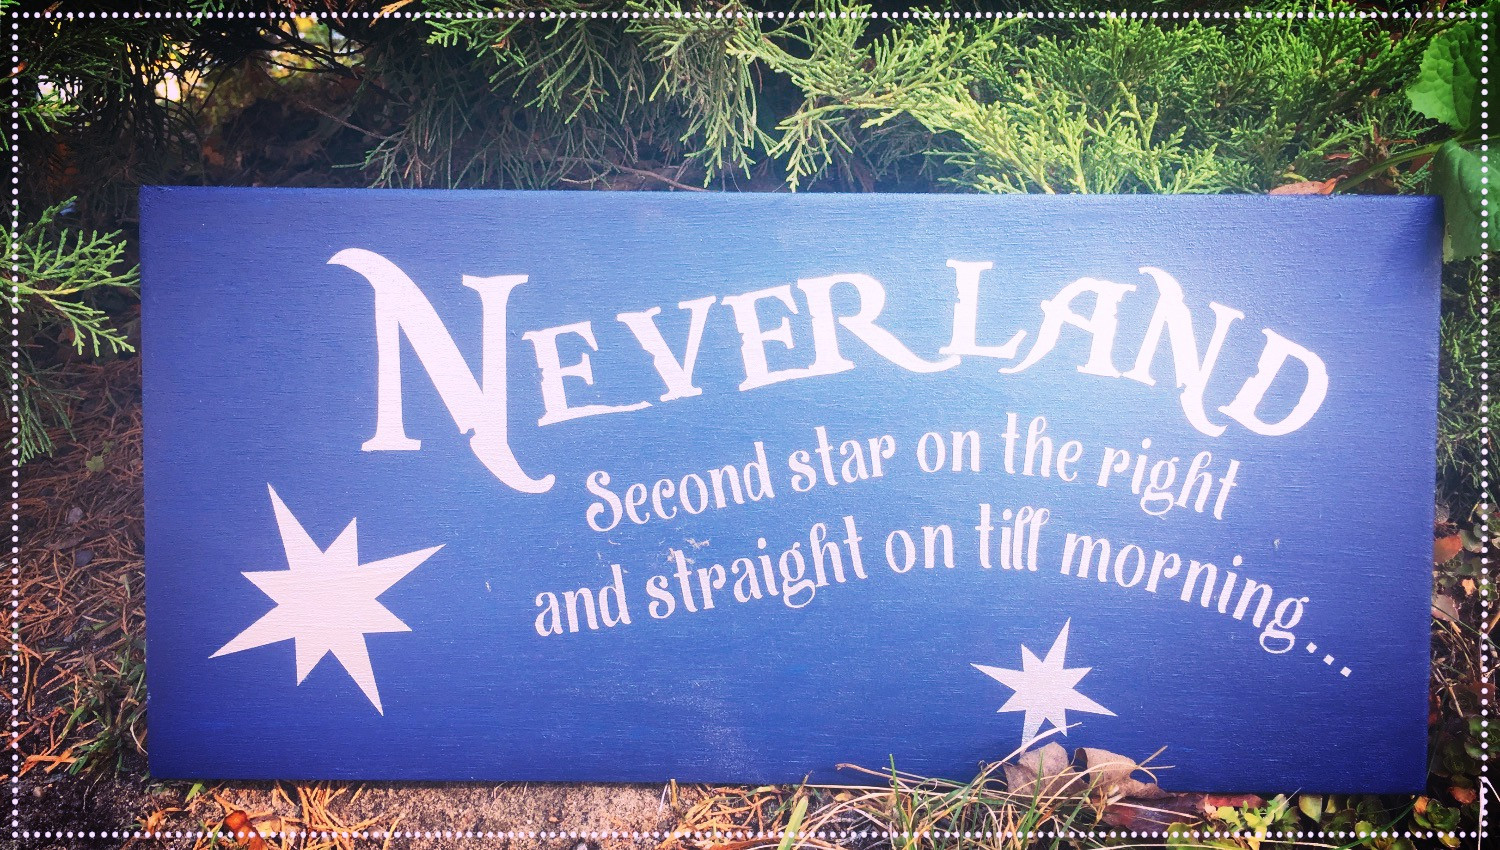 Neverland, Second Star On The Right.